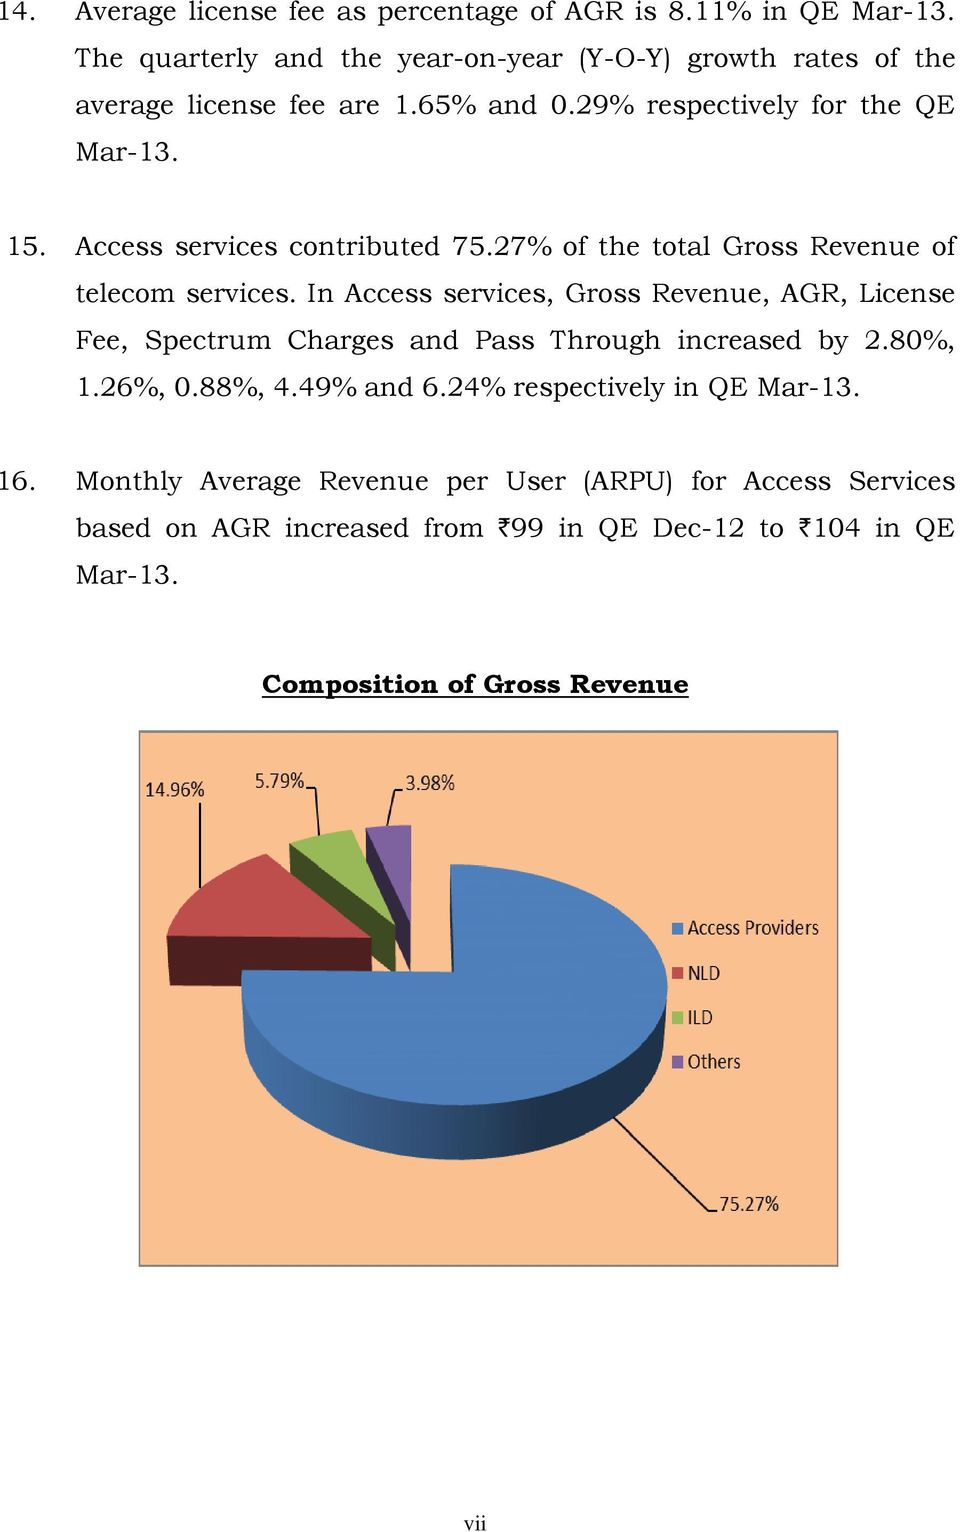 Access services contributed 75.27% of the total Gross Revenue of telecom services.